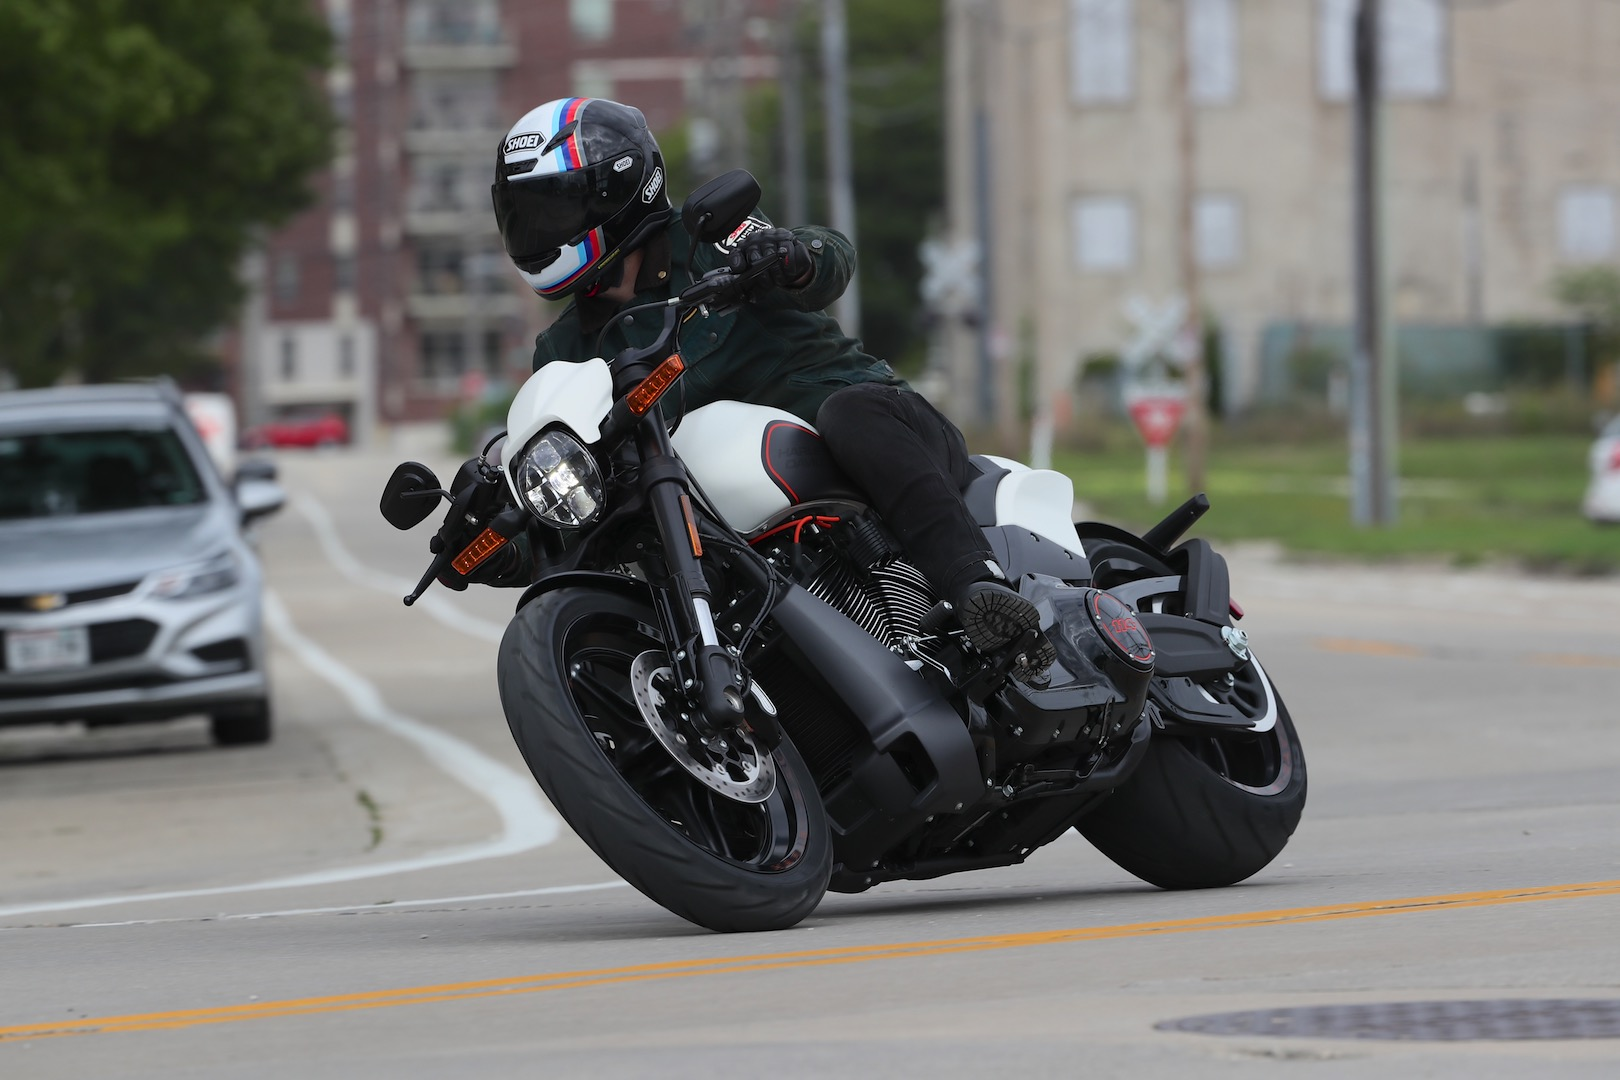 Review The 2019 Harley Davidson Fxdr 114: 2019 Harley-Davidson FXDR 114 Review (14 Fast Facts